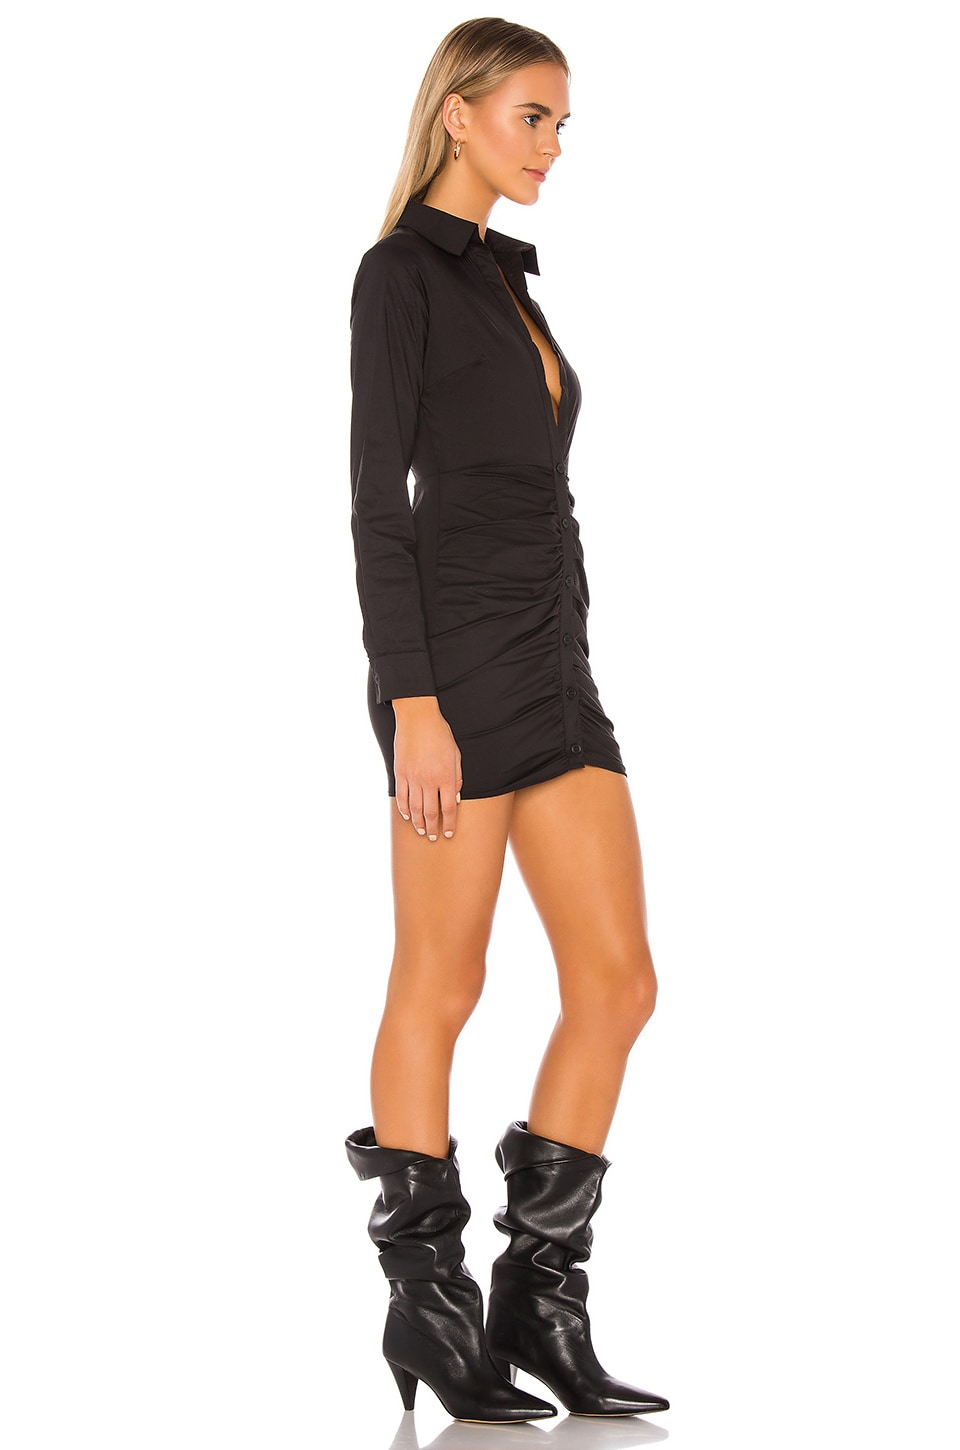 Colette Ruched Shirt Dress, view 2, click to view large image.